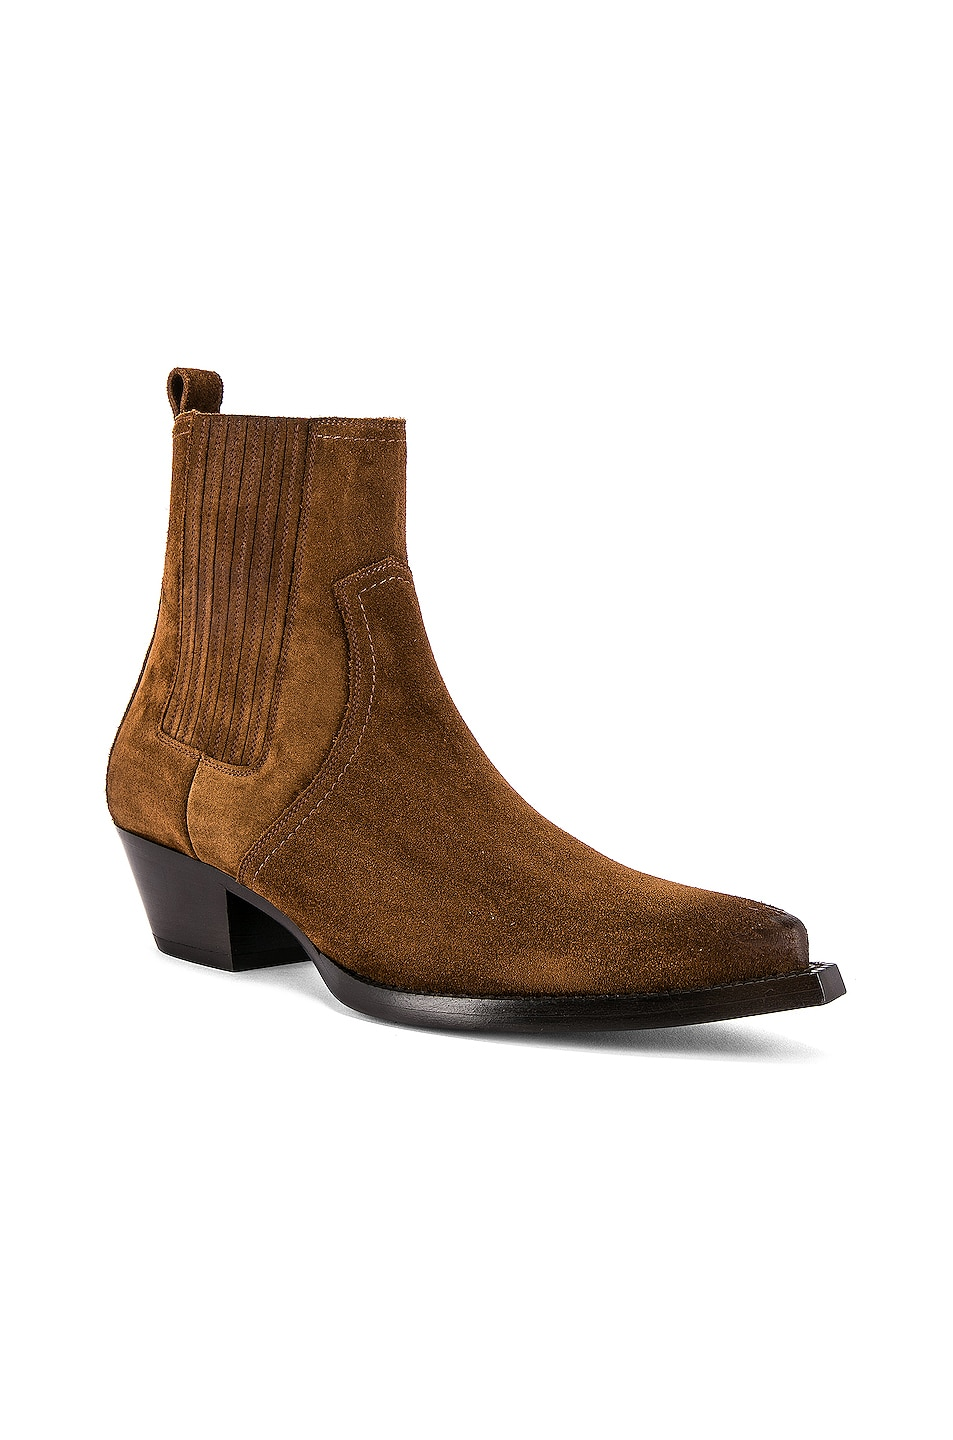 Image 1 of Saint Laurent Lukas Suede Boots in Land